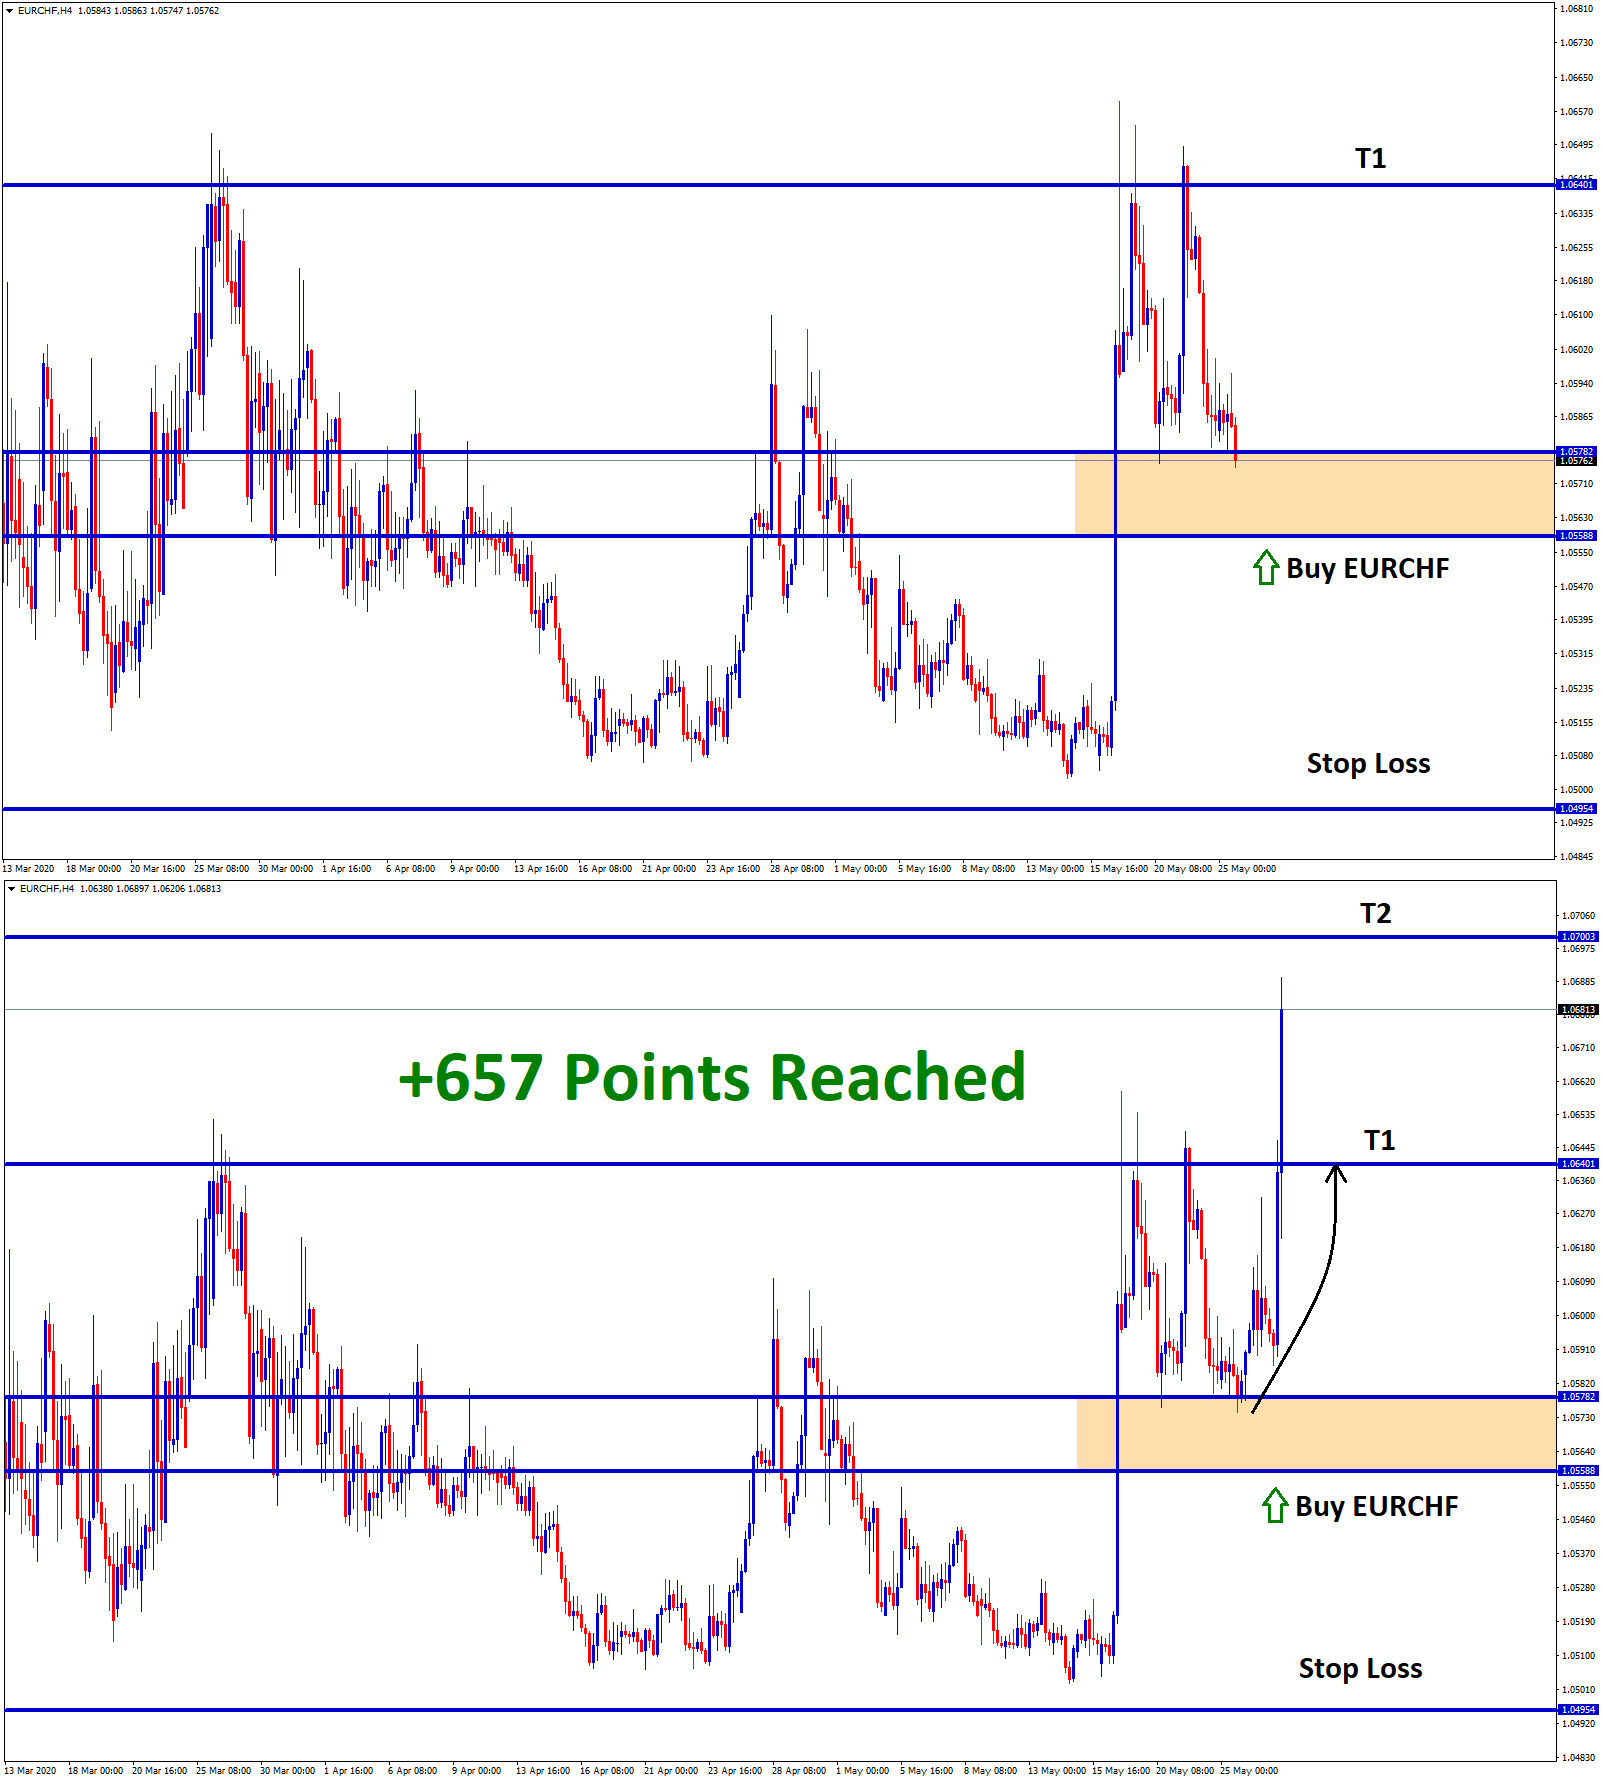 eurchf hits take profit after reversal from support level